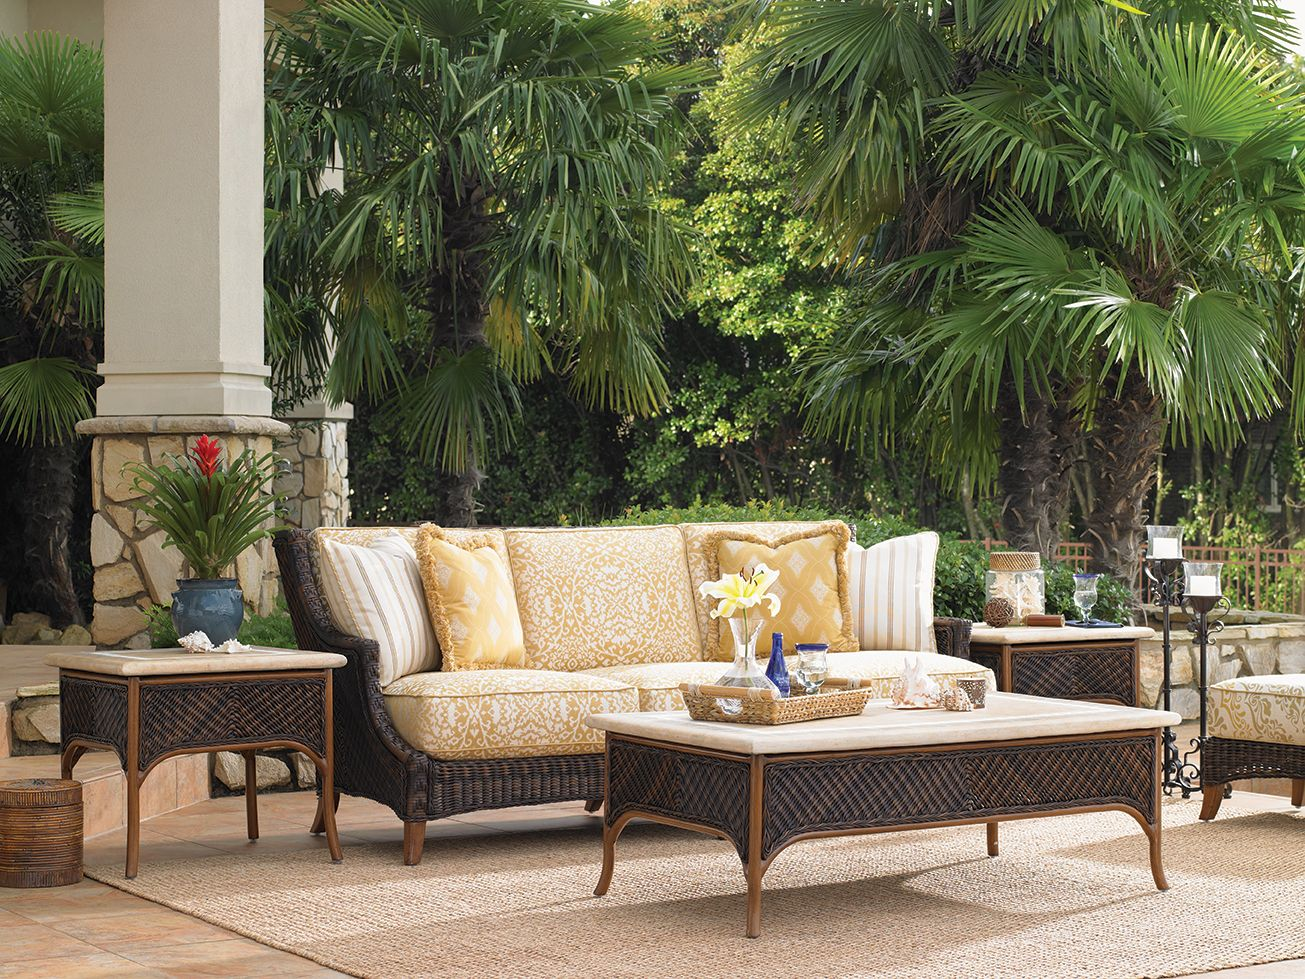 Tommy Bahama Island Estate Lanai Collection Outdoor Wicker Sofa Accent Tables And Tail